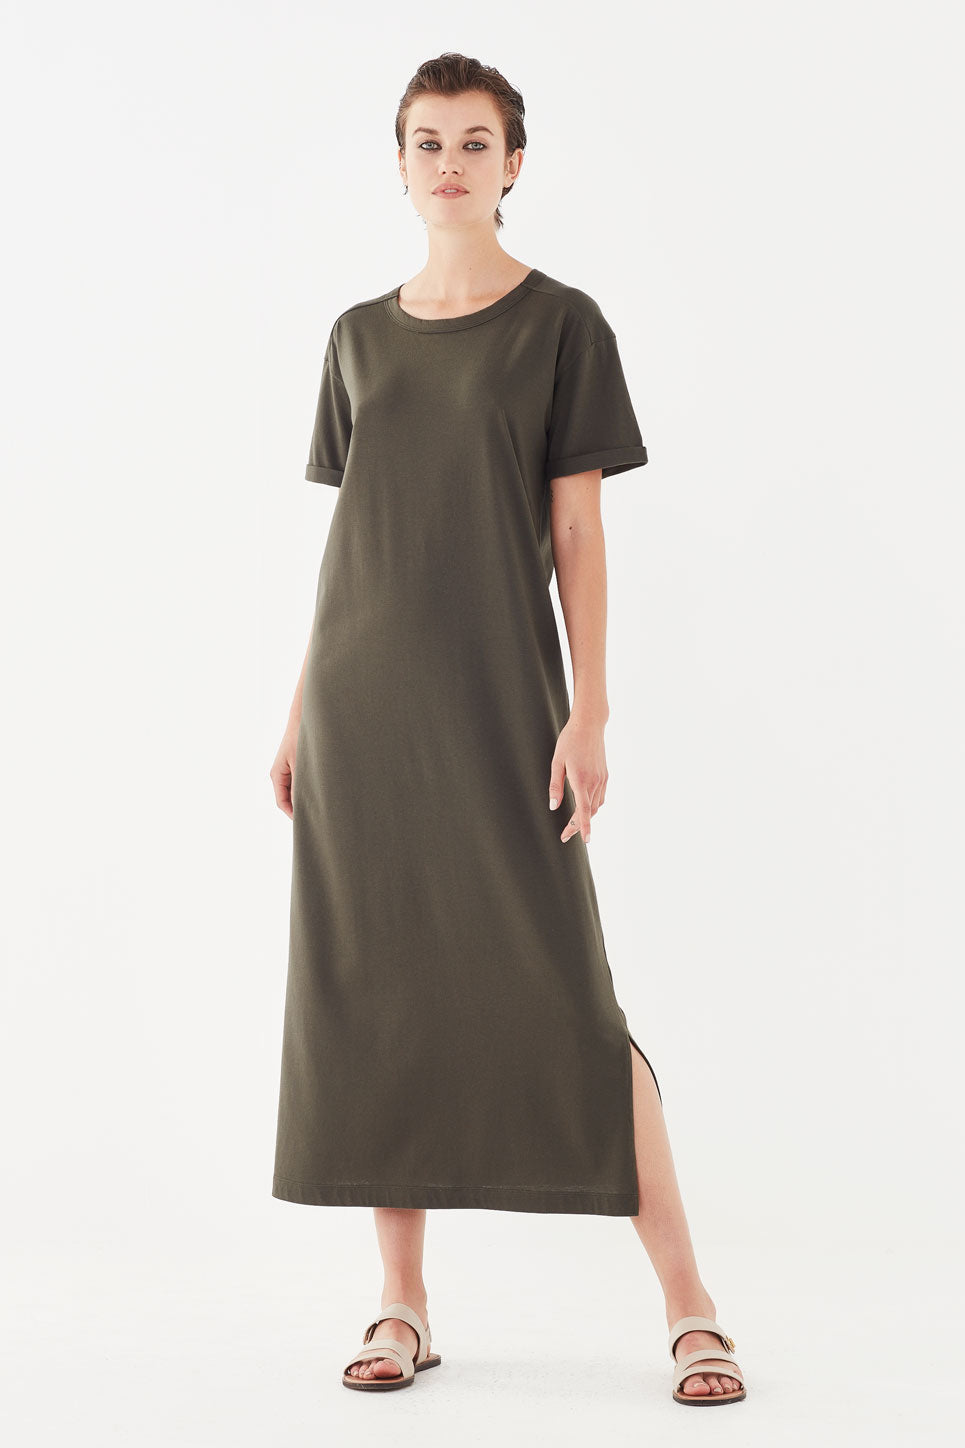 The Bastion Tee Dress in Olive Green